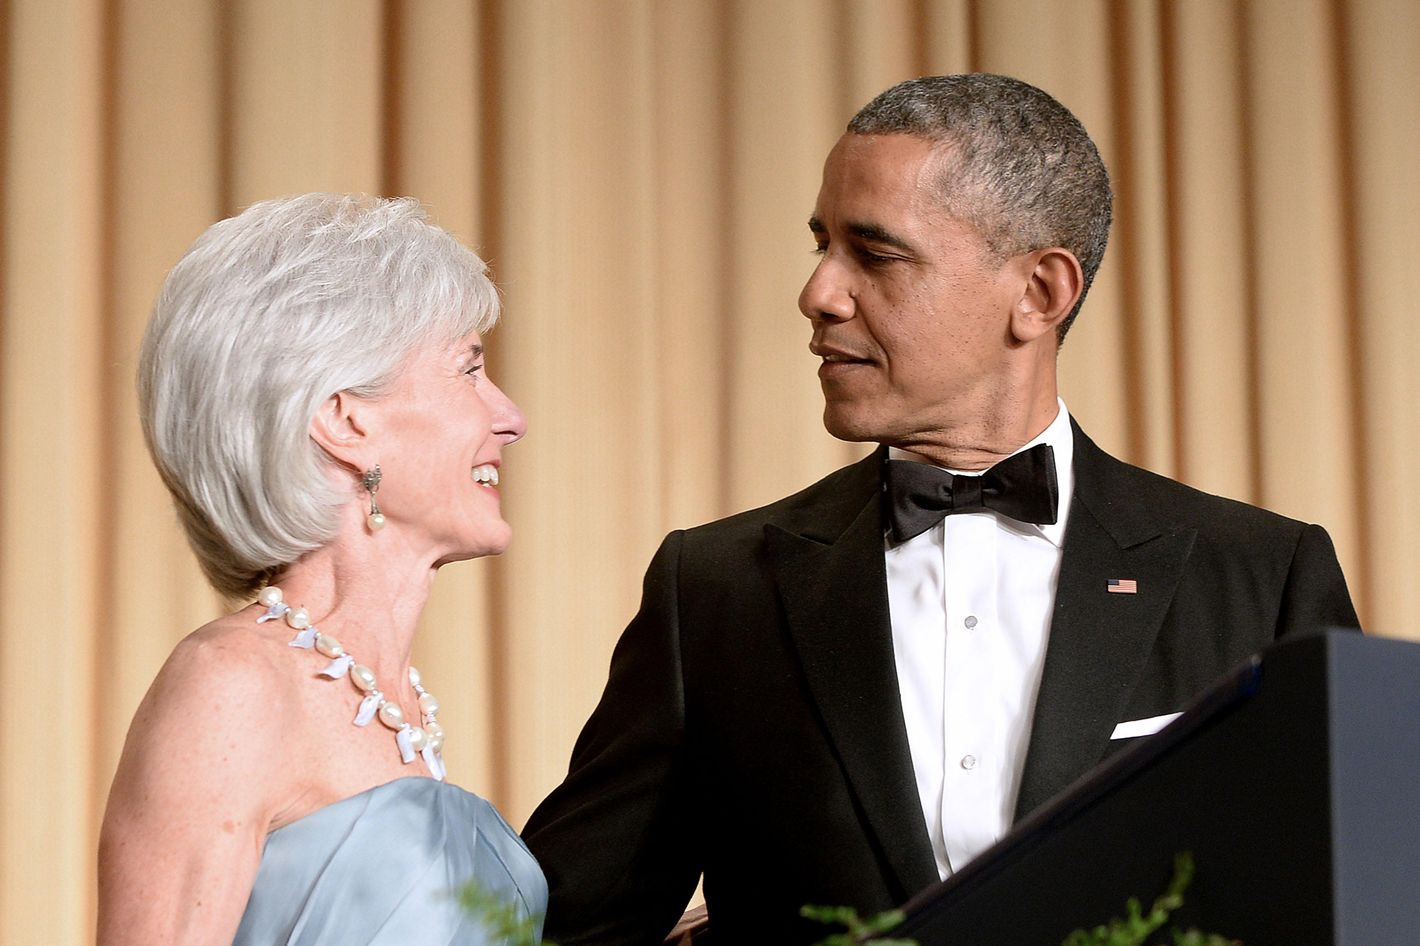 US President Barack Obama and outgoing Health and Human Services Sec. Kathleen Sebelius attend the annual White House Correspondent's Association Gala at the Washington Hilton hotel May 3, 2014 in Washington, D.C.